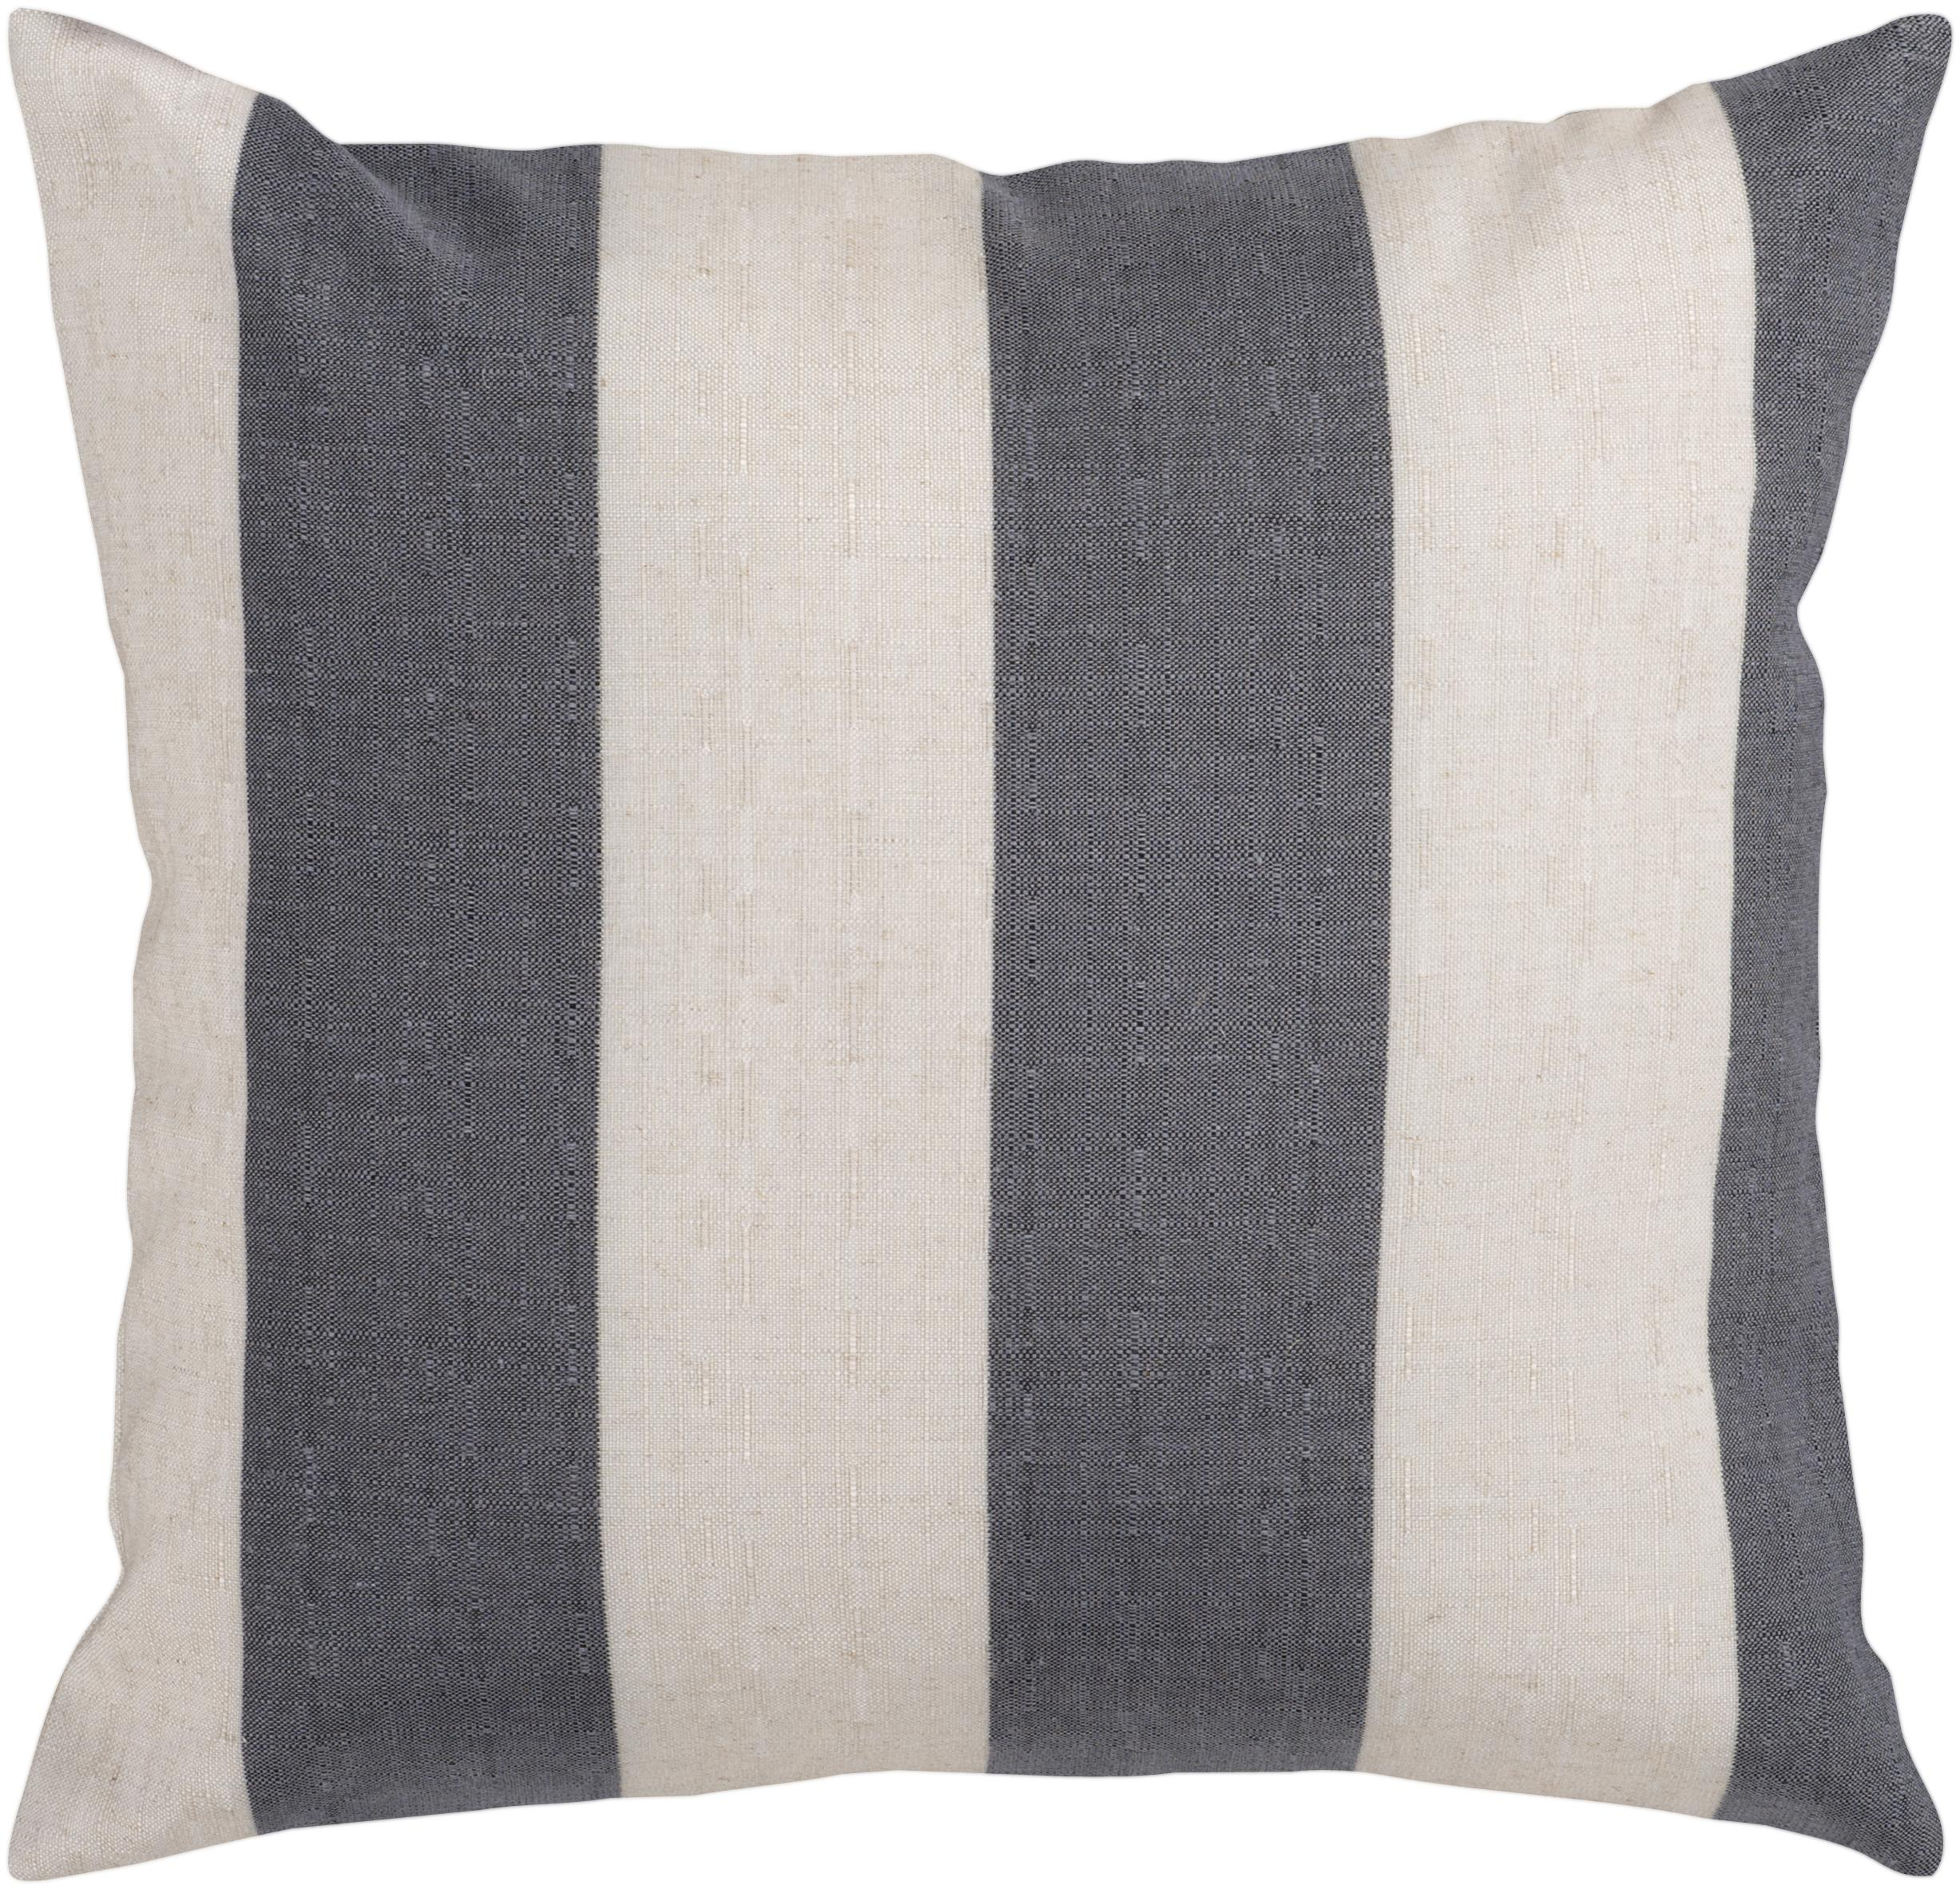 "Surya Pillows 18"" x 18"" Pillow - Item Number: JS009-1818P"